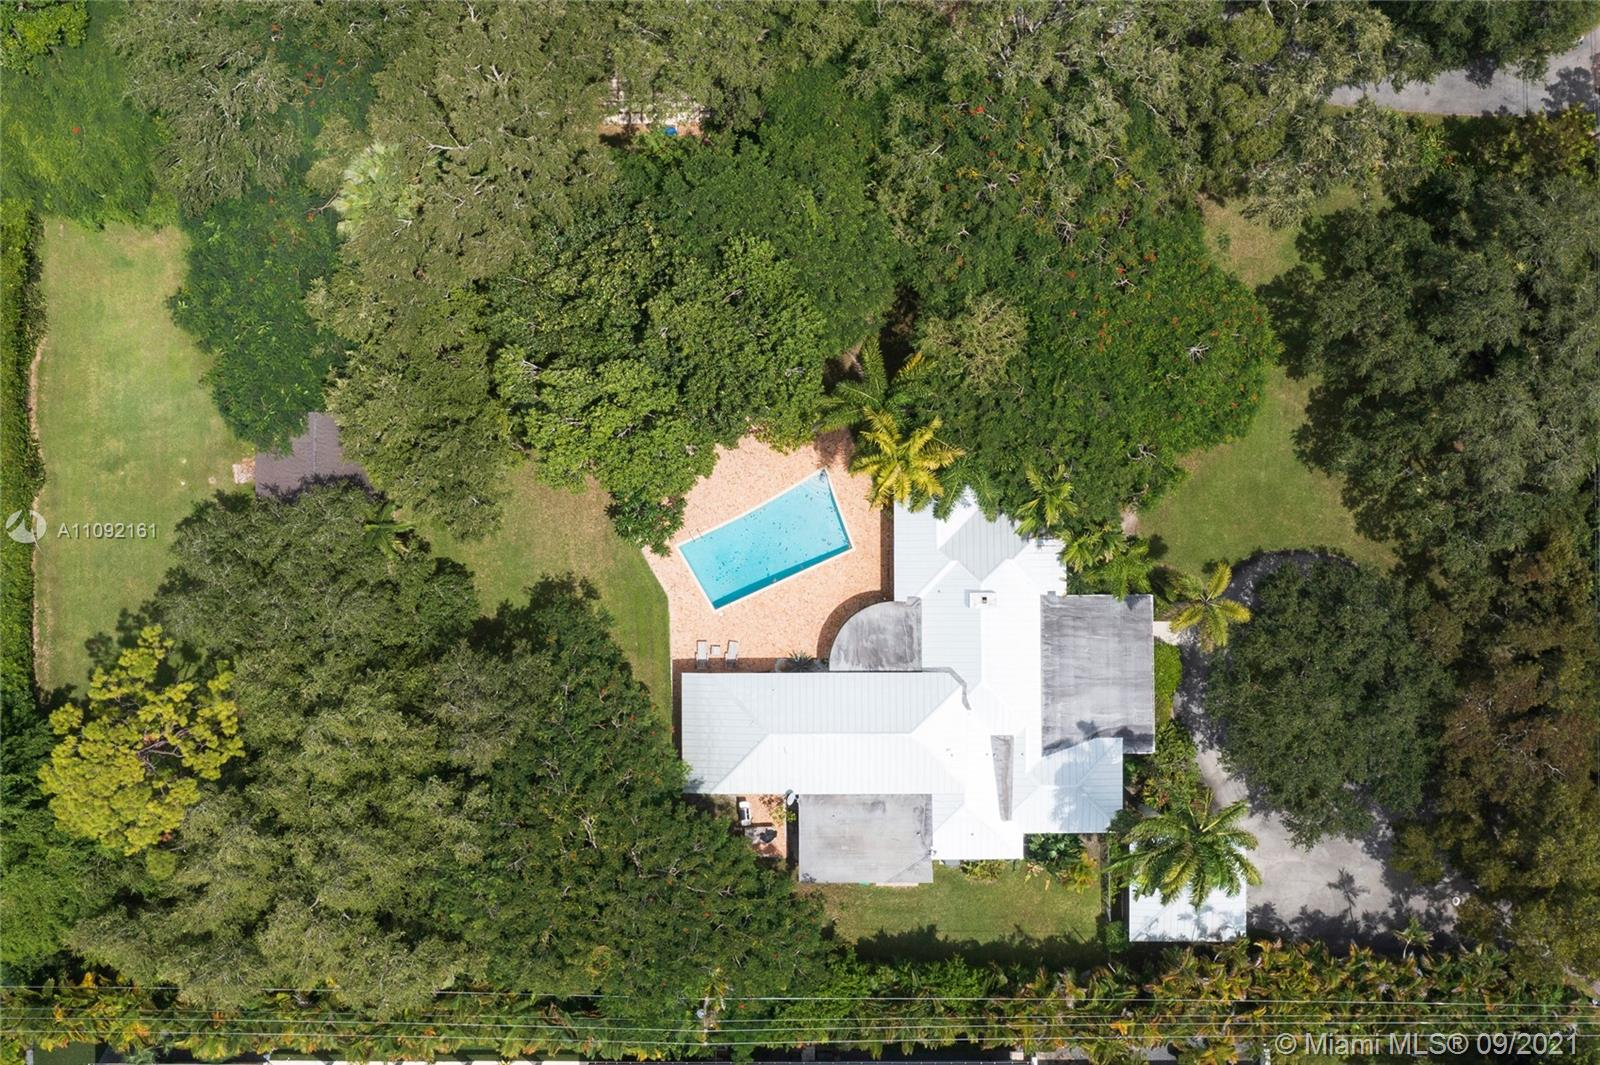 Don't miss this rare opportunity to build or expand on a deep 1.14 acre lot in prime Northeast Pinecrest where homes currently for sale on similar lots average over $9 million. Walking distance to Gulliver Prep and just minutes from Beth Am, Our Lady of Lourdes Academy, St Thomas, Pinecrest Elementary, and great shopping and restaurants in South Miami and Dadeland. A similar property across the street recently sold for $3.2 million in just 17 days, and the least expensive home currently for sale in Northeast Pinecrest on 3/4 of an acre or more is $4.95 million so don't miss this chance to own over an acre in one of the most exclusive neighborhoods in Miami.